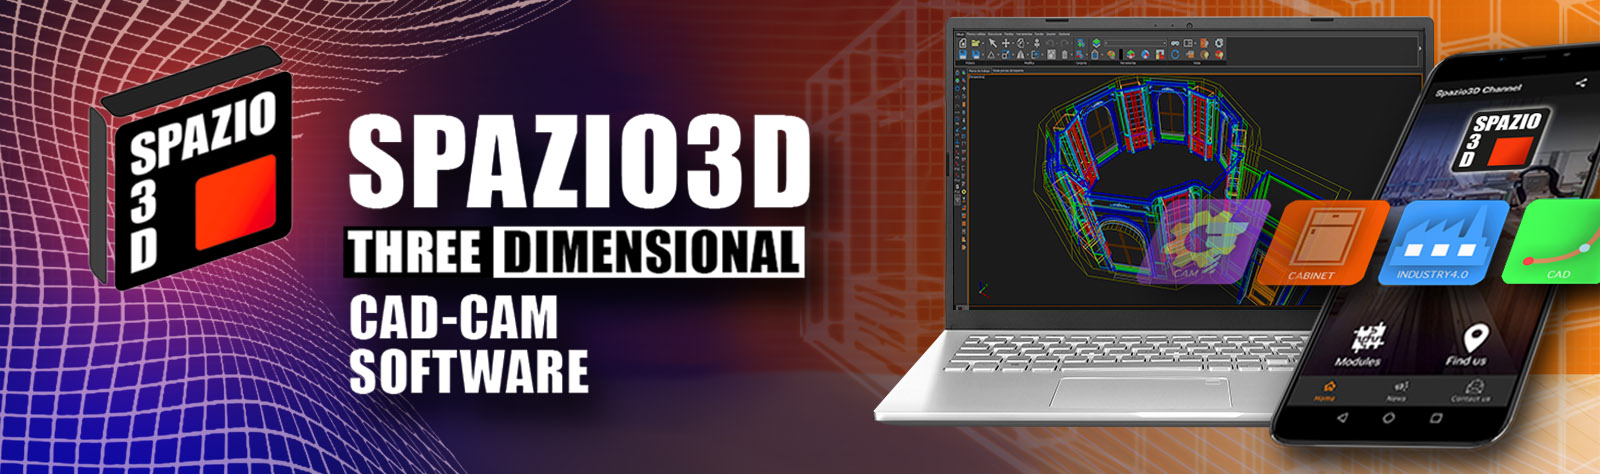 SPAZIO3D FOR THE INDUSTRY